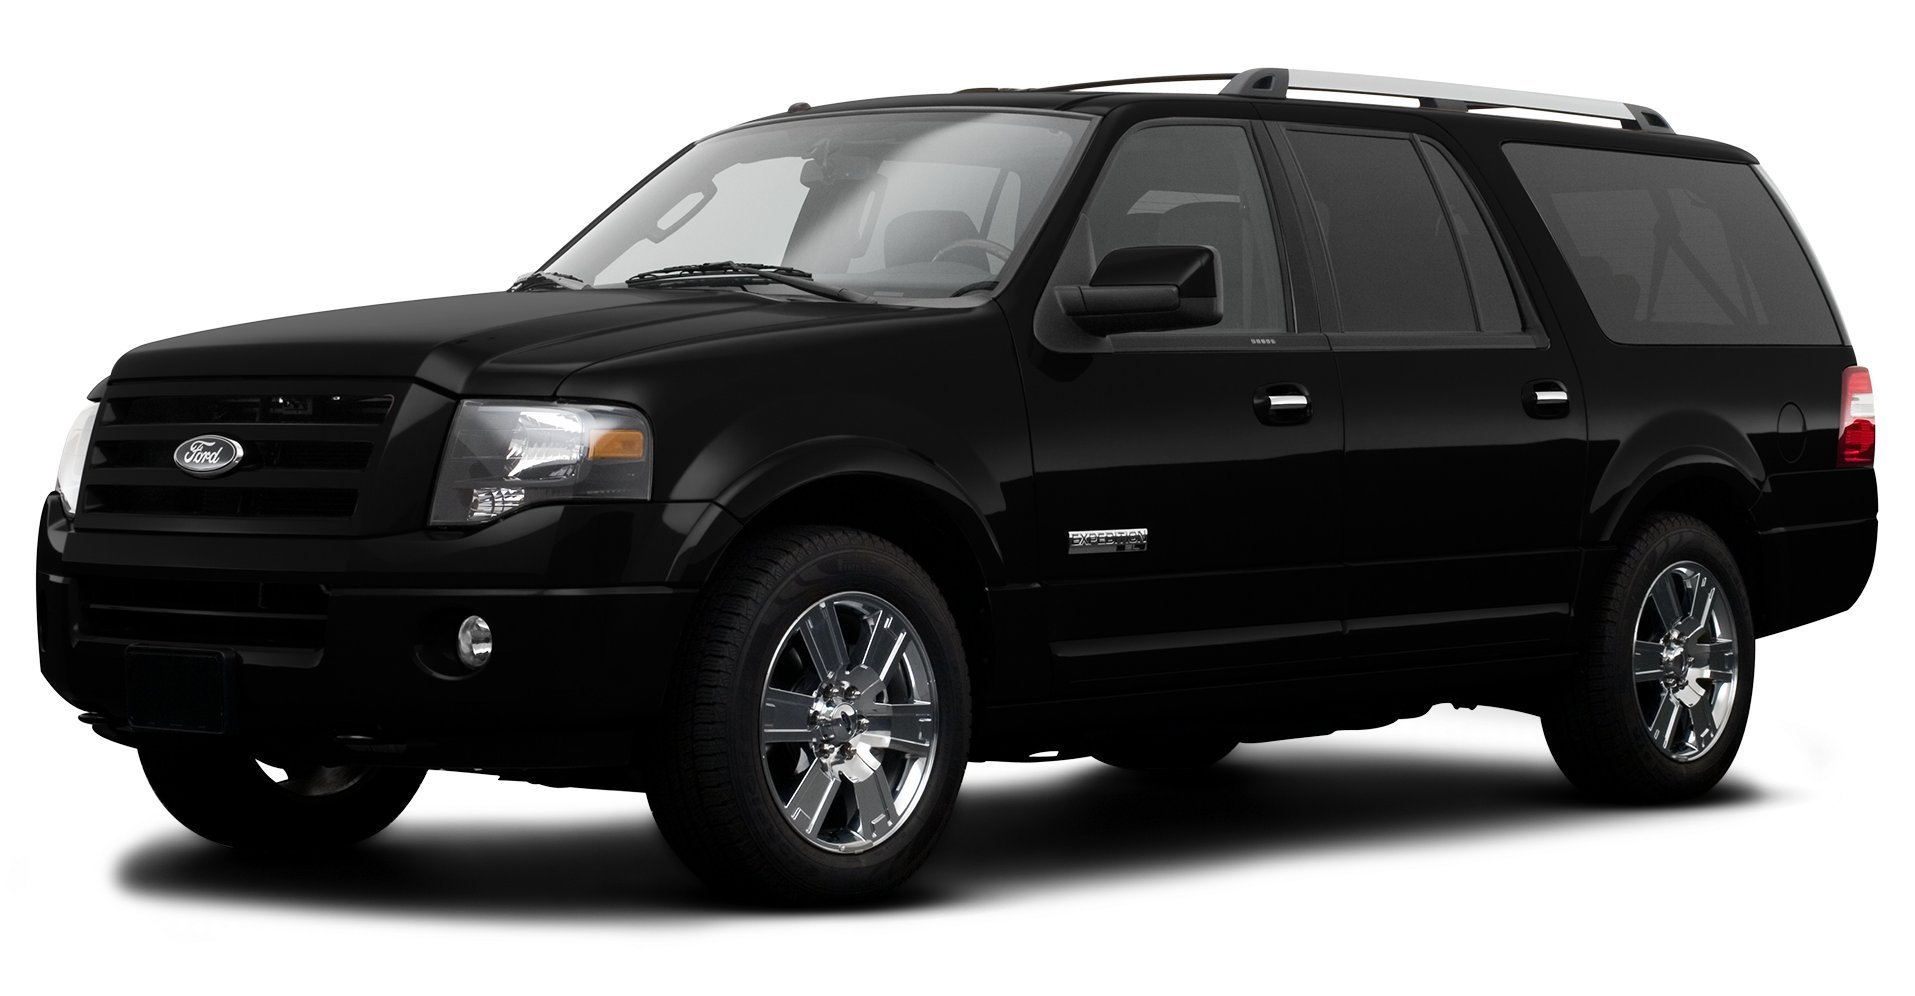 2008 ford expedition reviews images and. Black Bedroom Furniture Sets. Home Design Ideas